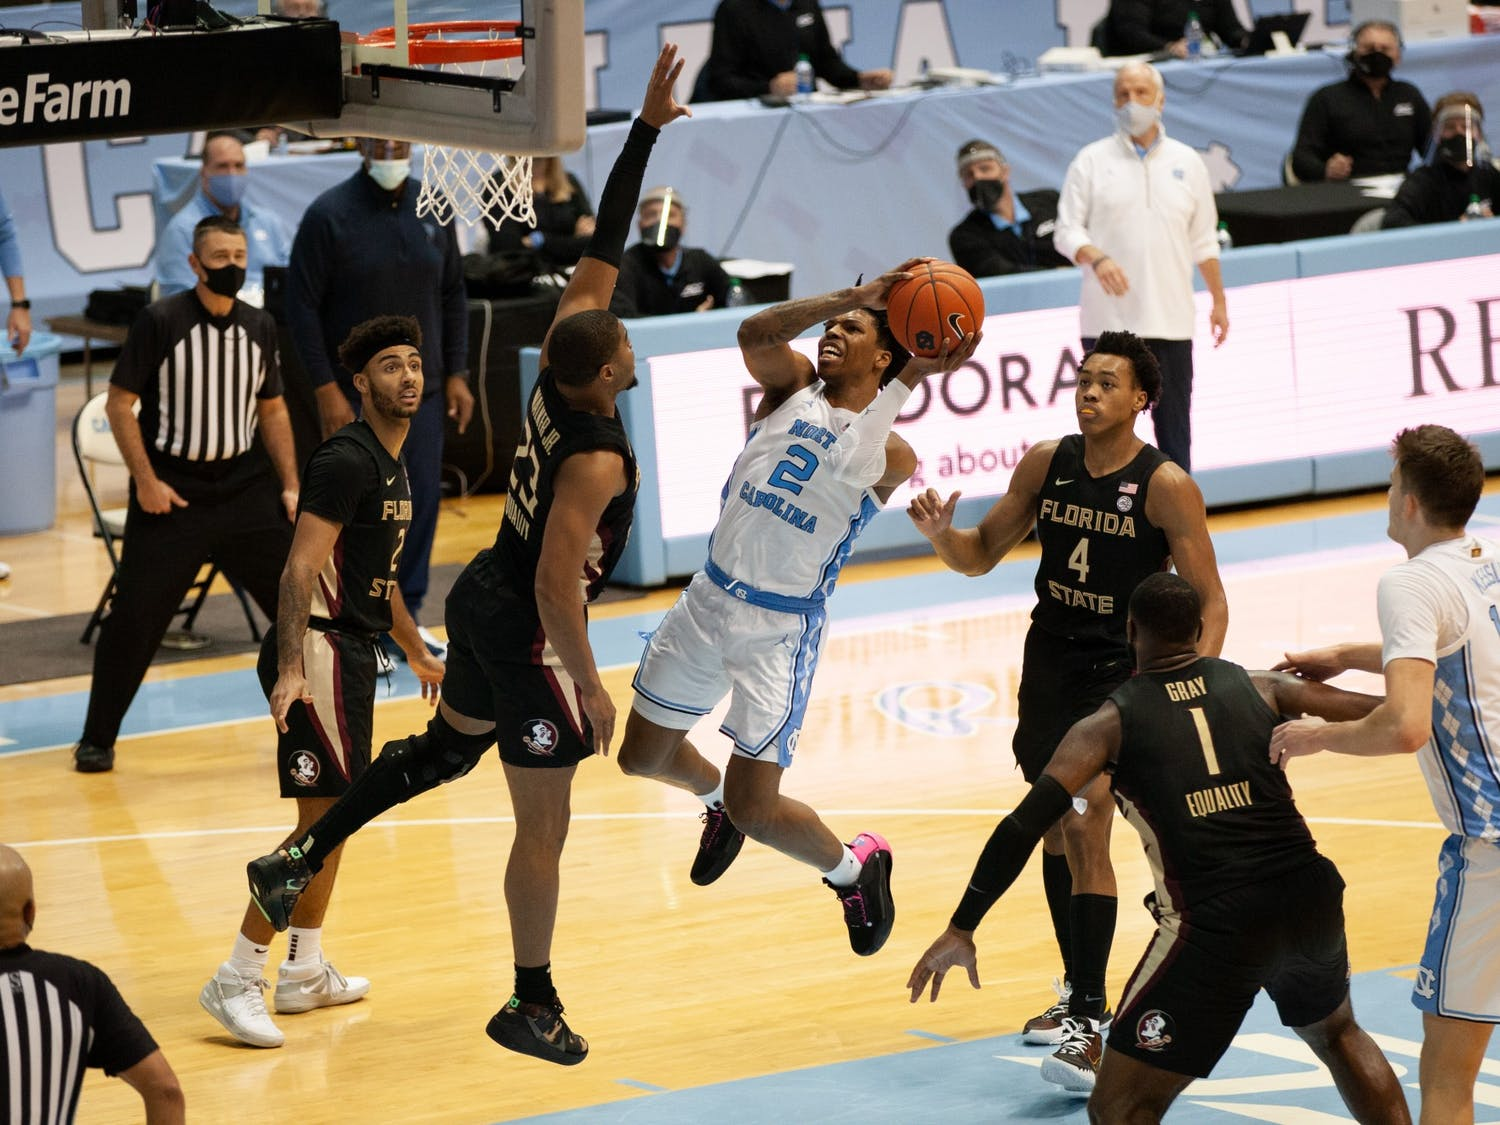 UNC first-year guard Caleb Love (2) goes up for a layup in Carolina's 78-70 victory over Florida State in the Smith Center, Feb. 27, 2021.